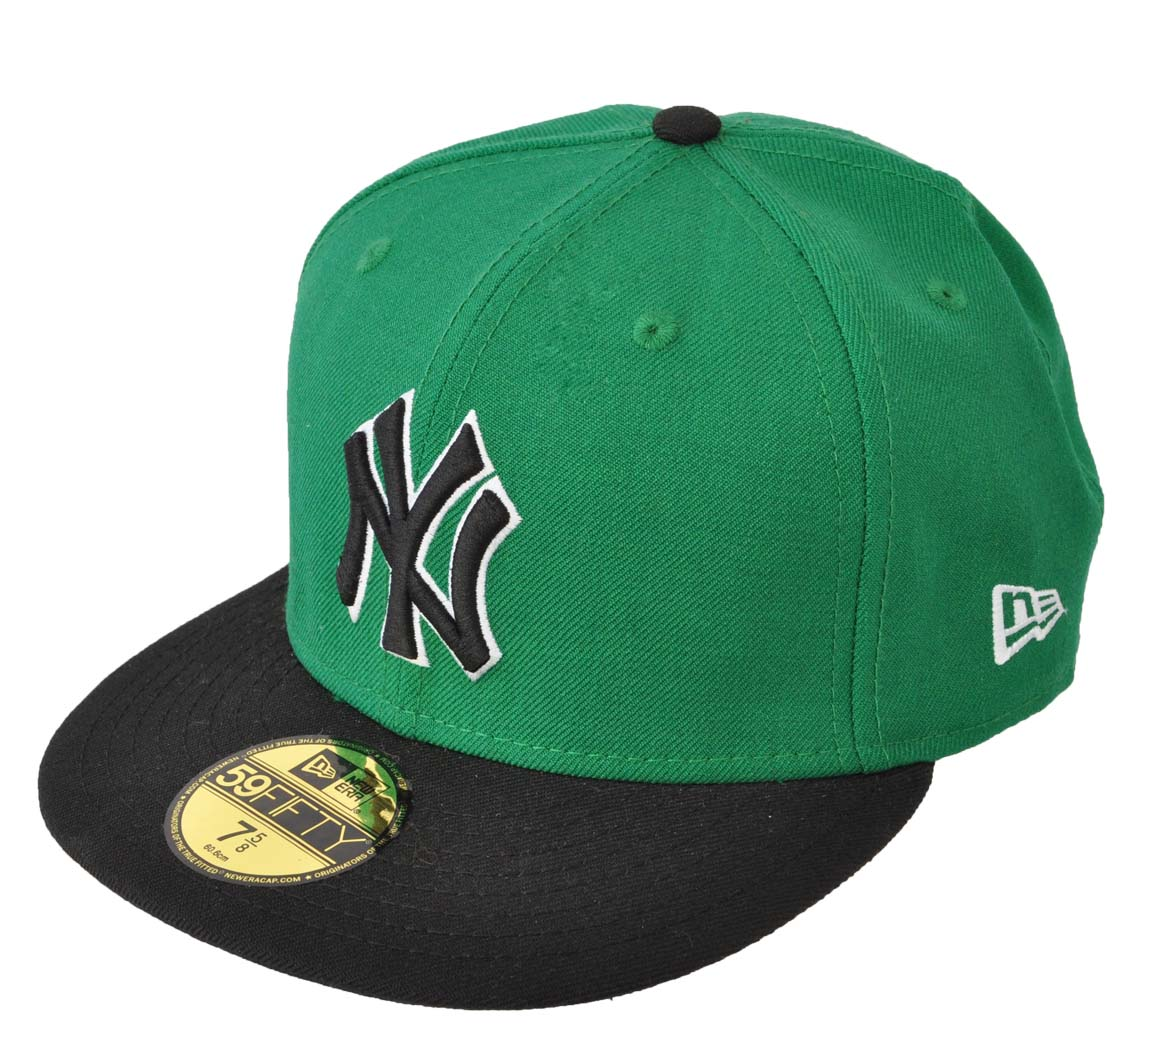 casquette homme ny green casquette. Black Bedroom Furniture Sets. Home Design Ideas